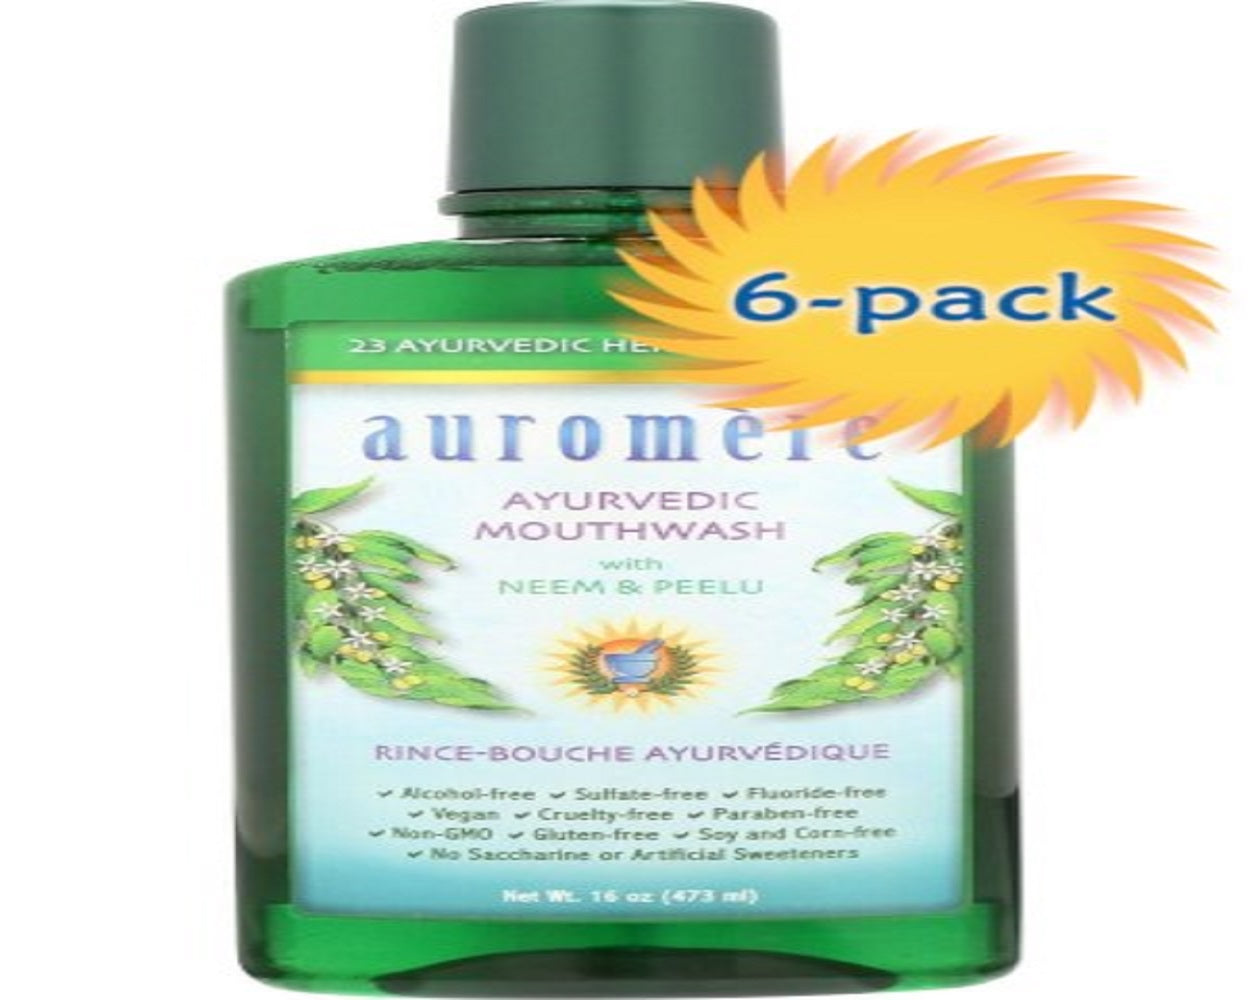 6-PACK 16 oz Ayurvedic Mouthwash